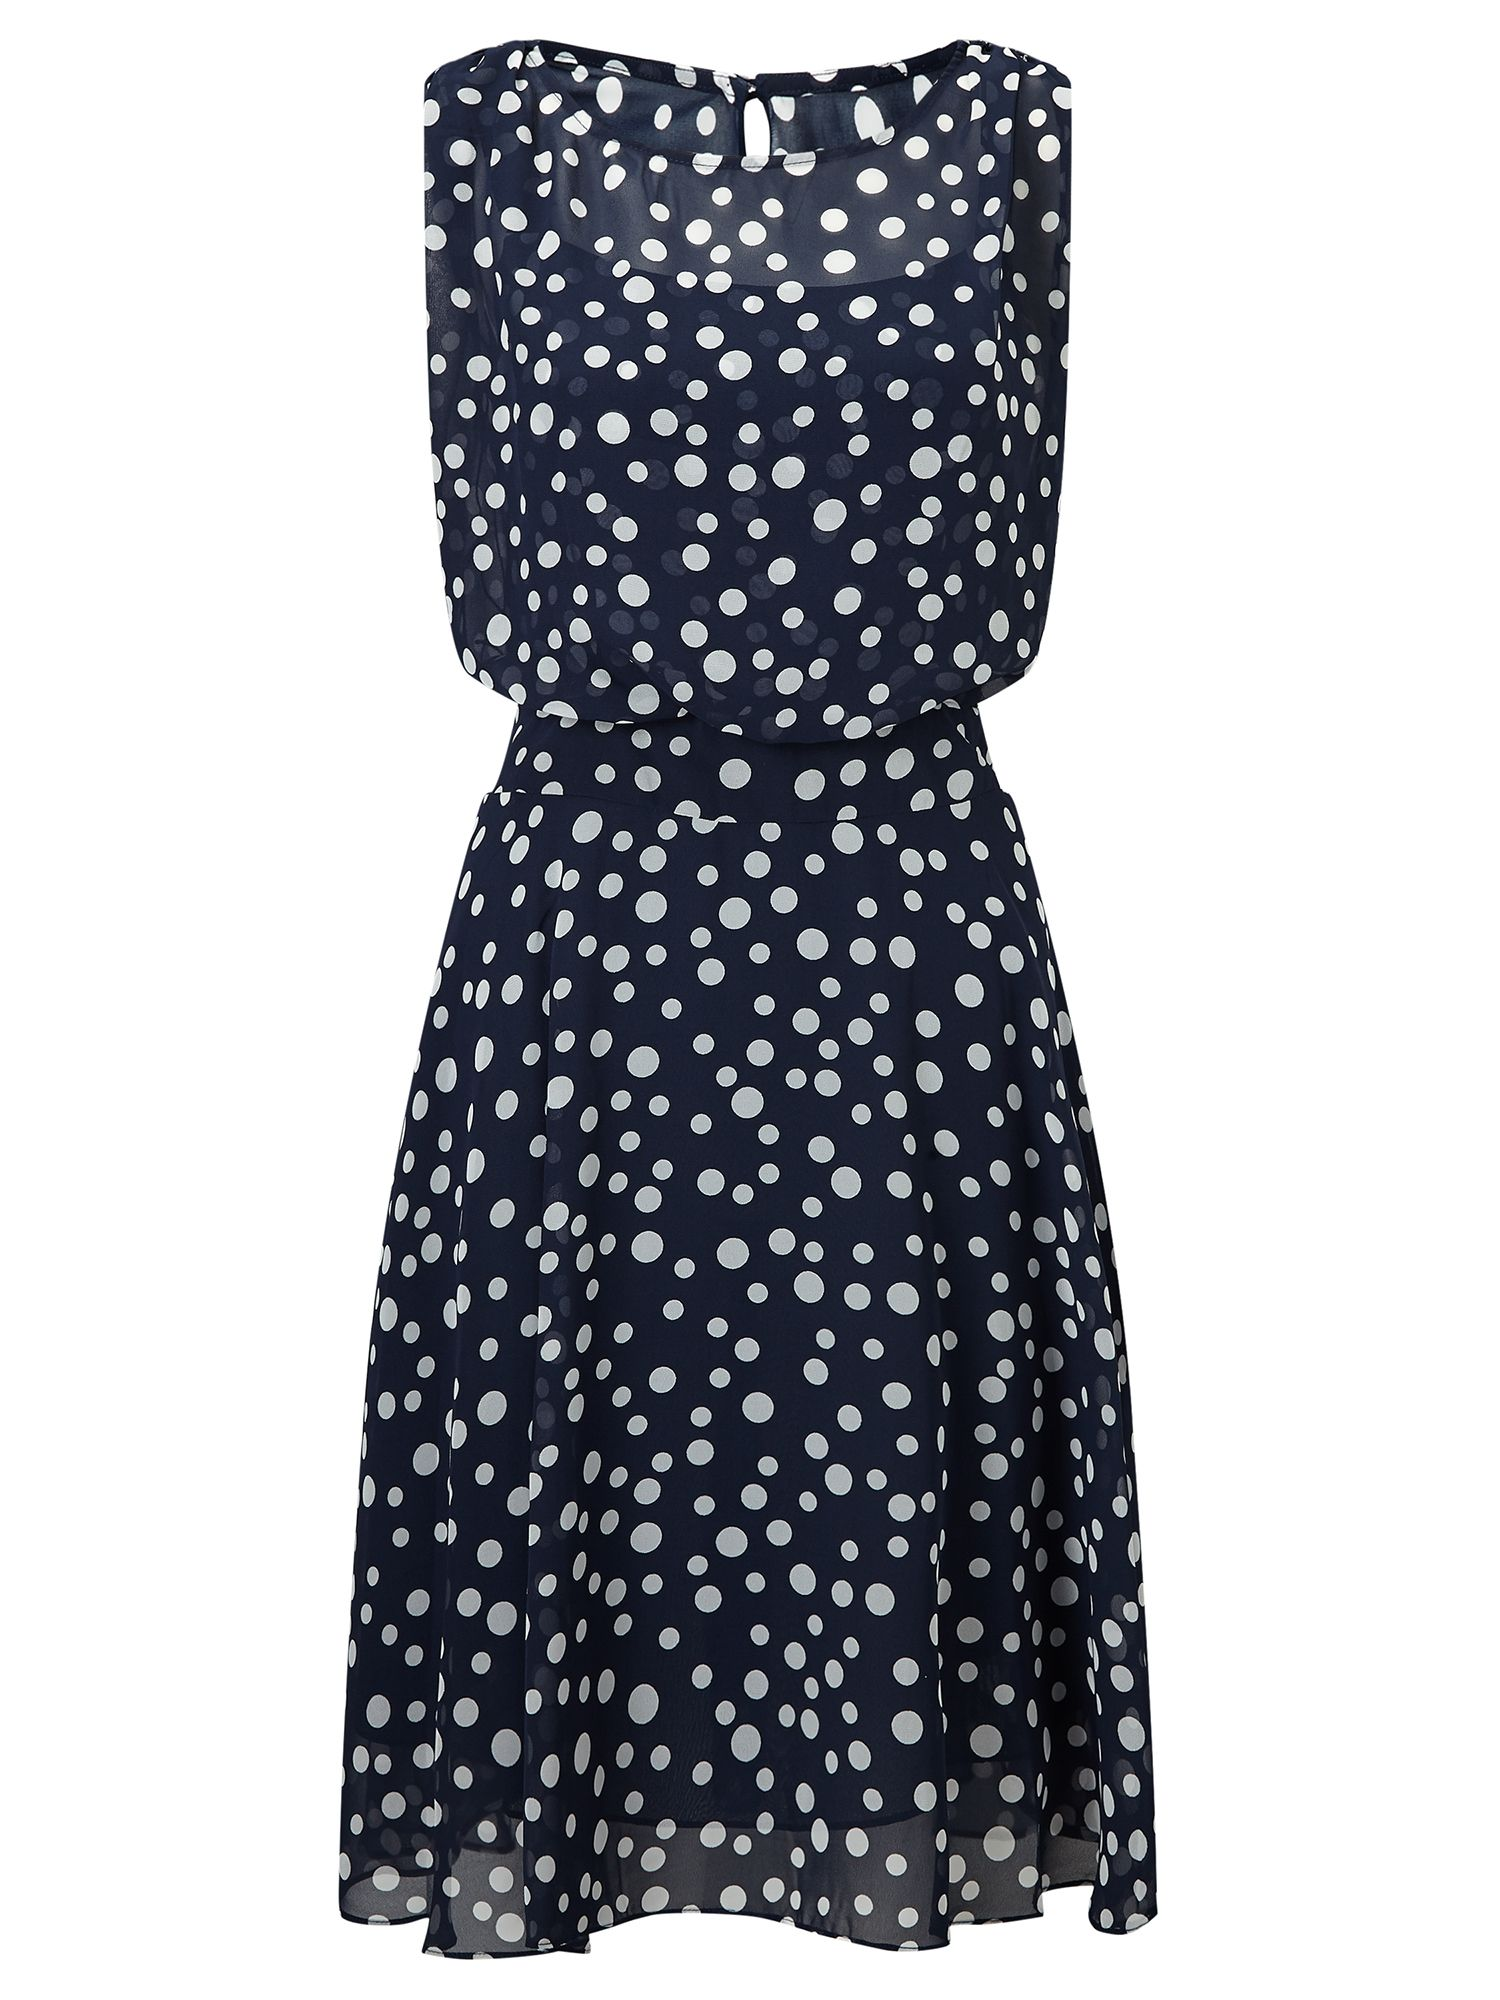 Adrianna Papell Polka dot fit and flare dress, Multi-Coloured